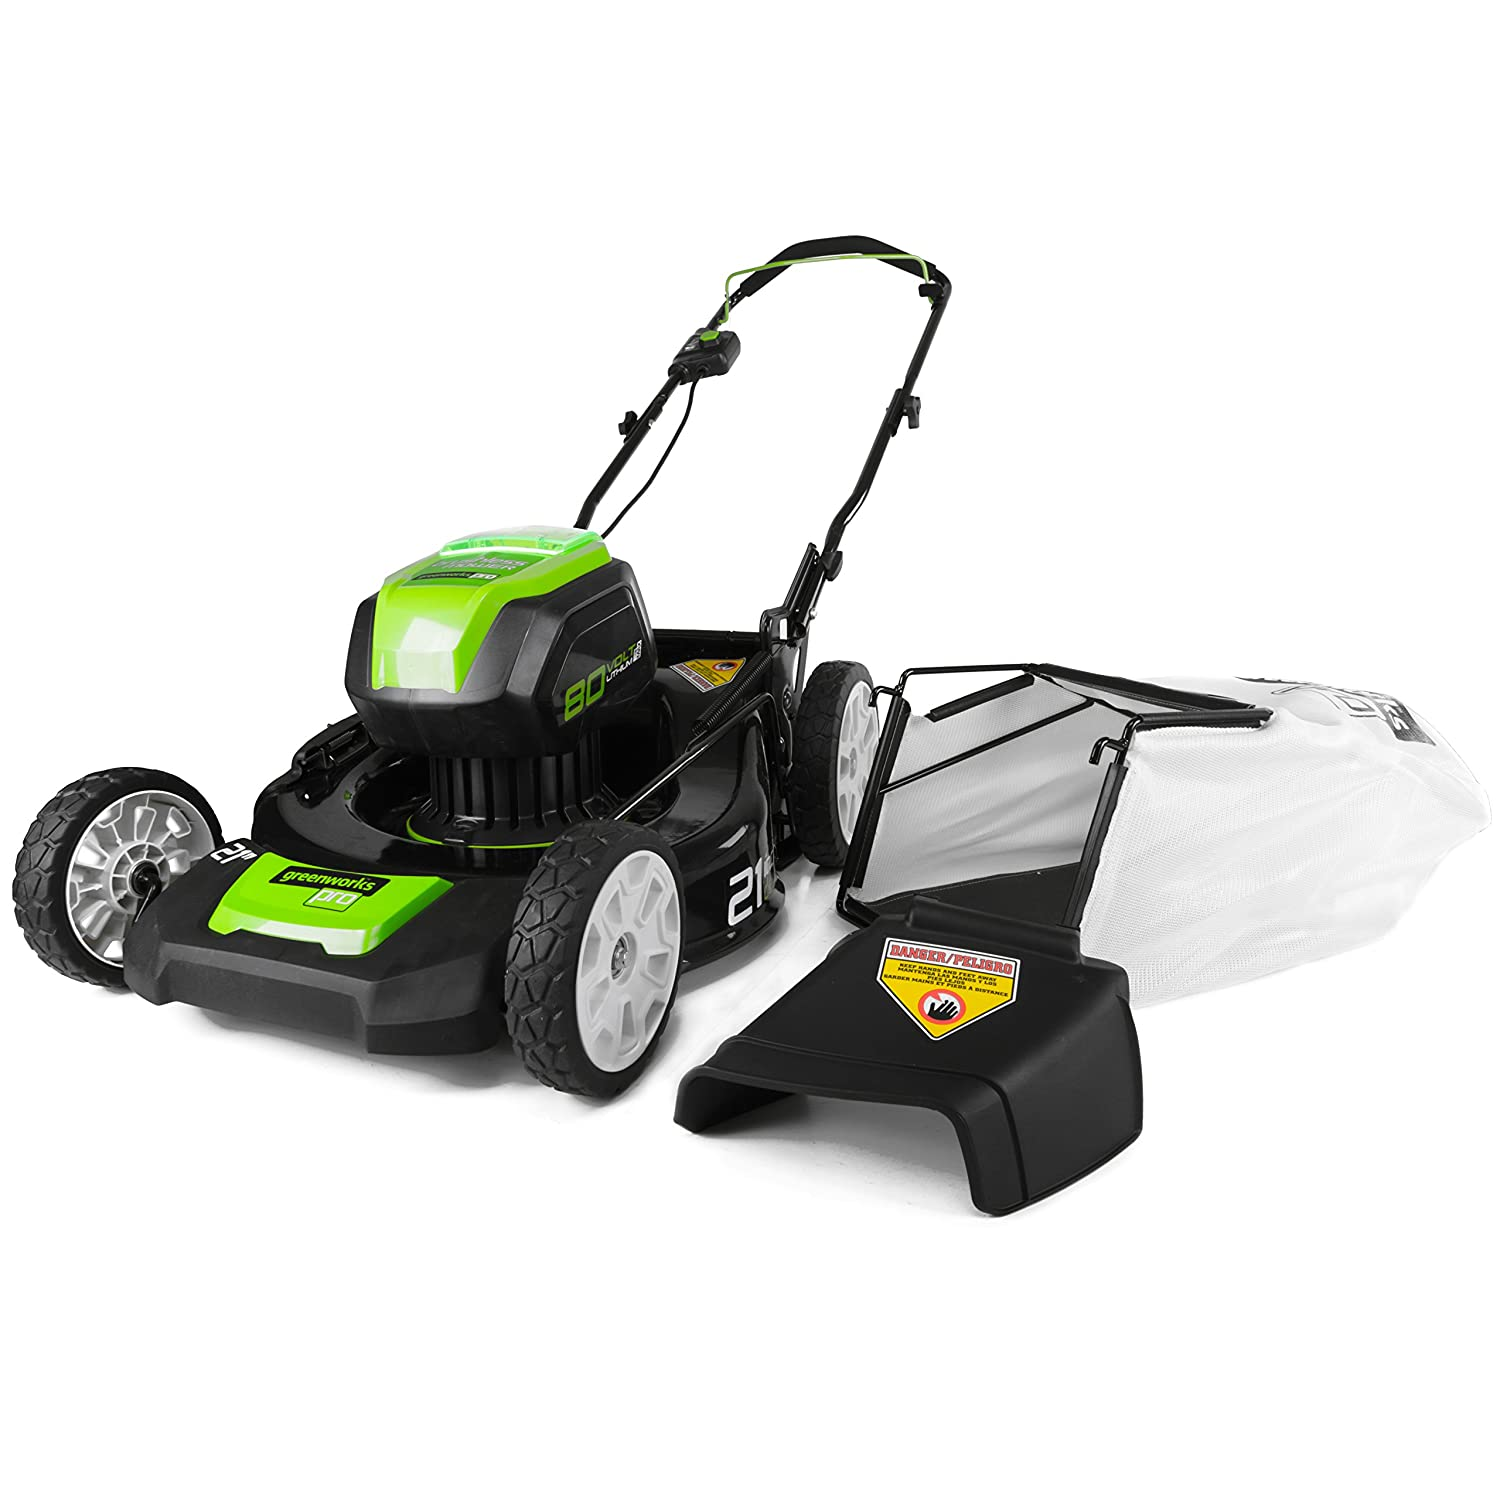 Greenworks Pro 21 Inch 80v Cordless Lawn Mower Battery Craftsman Electric Electrical Schematics Not Included Glm801600 Garden Outdoor